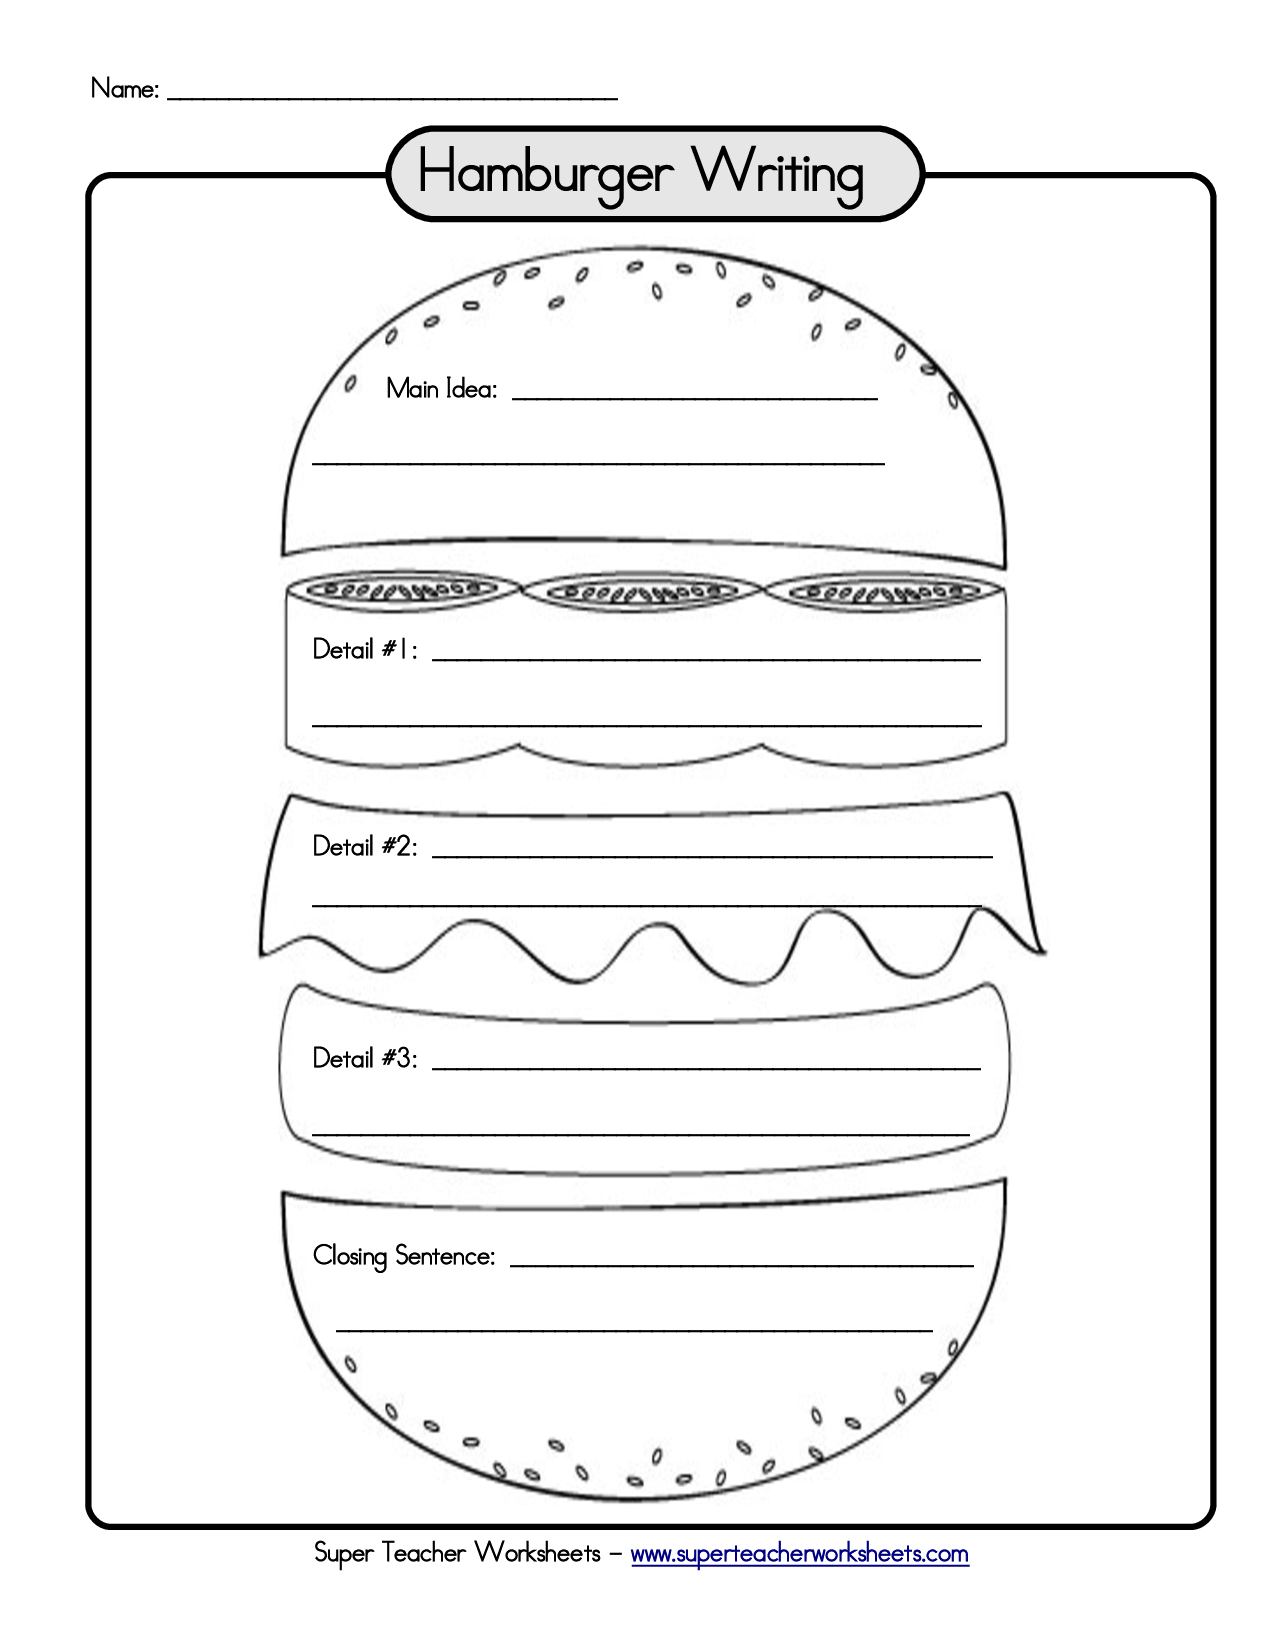 Hamburger Graphic Organizer Writing Paragraph Links To A Bunch Of Different Templates Which Are